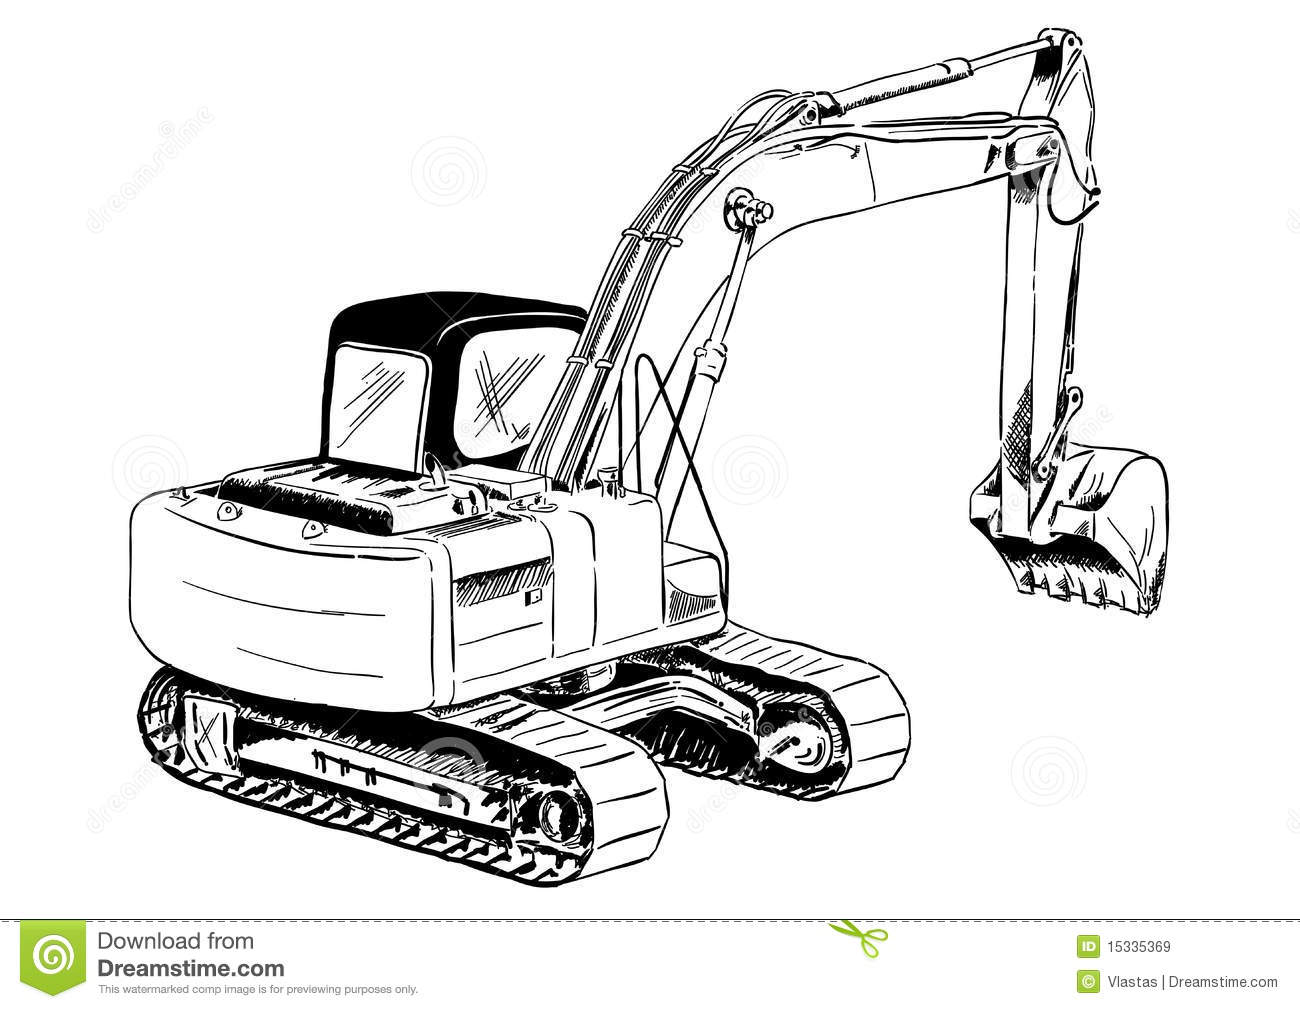 Excavator Stock Vector Illustration Of Equipment